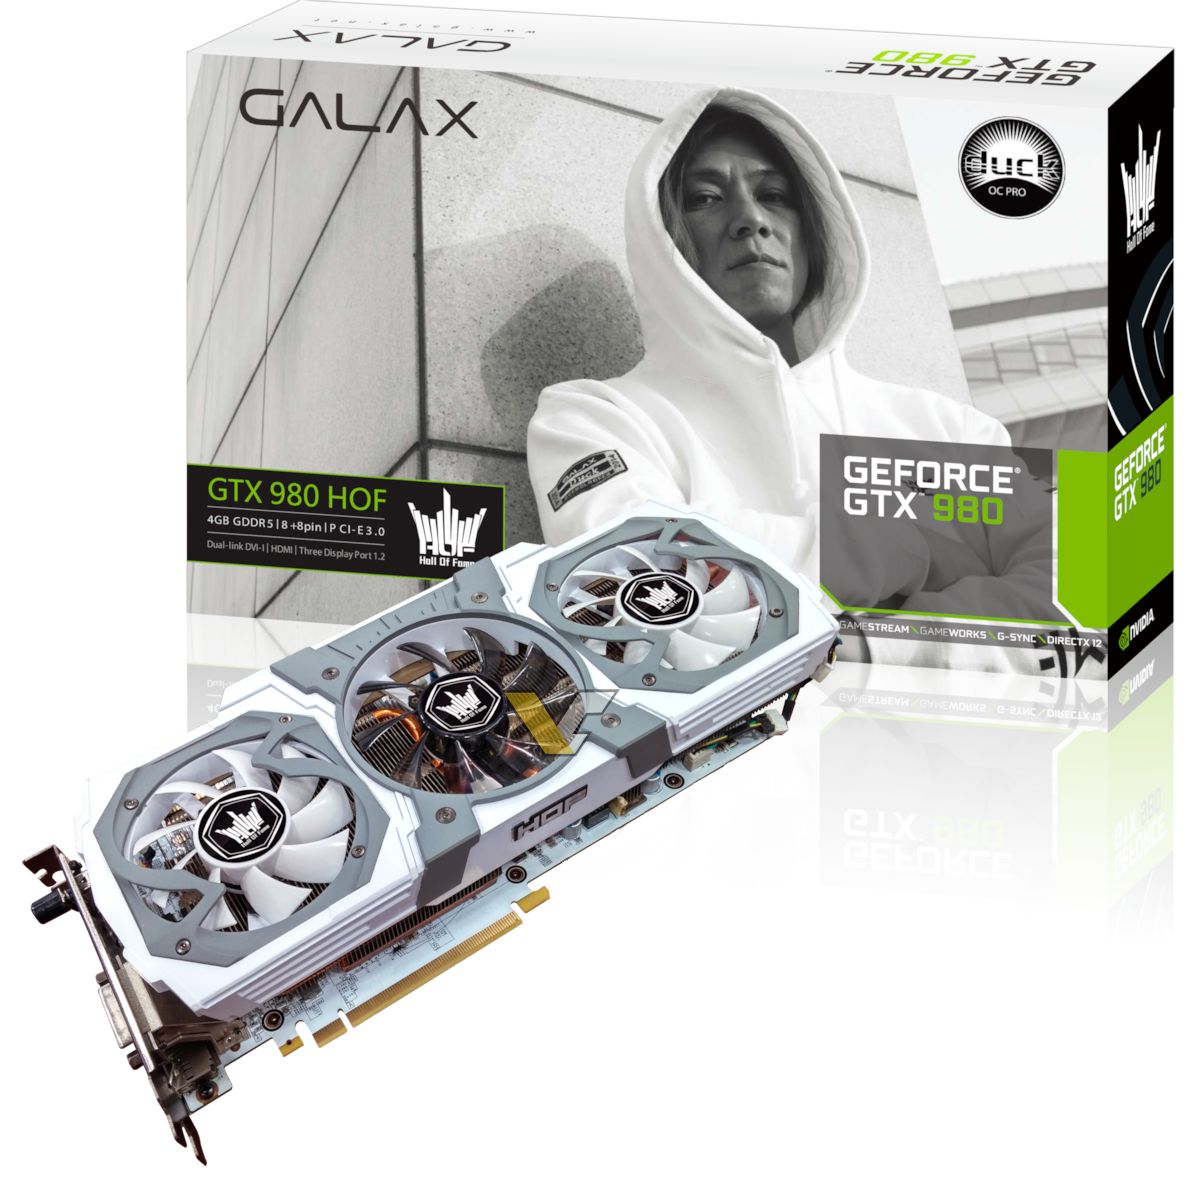 GALAX-GeForce-GTX-980-HOF-DUCK-Edition-1